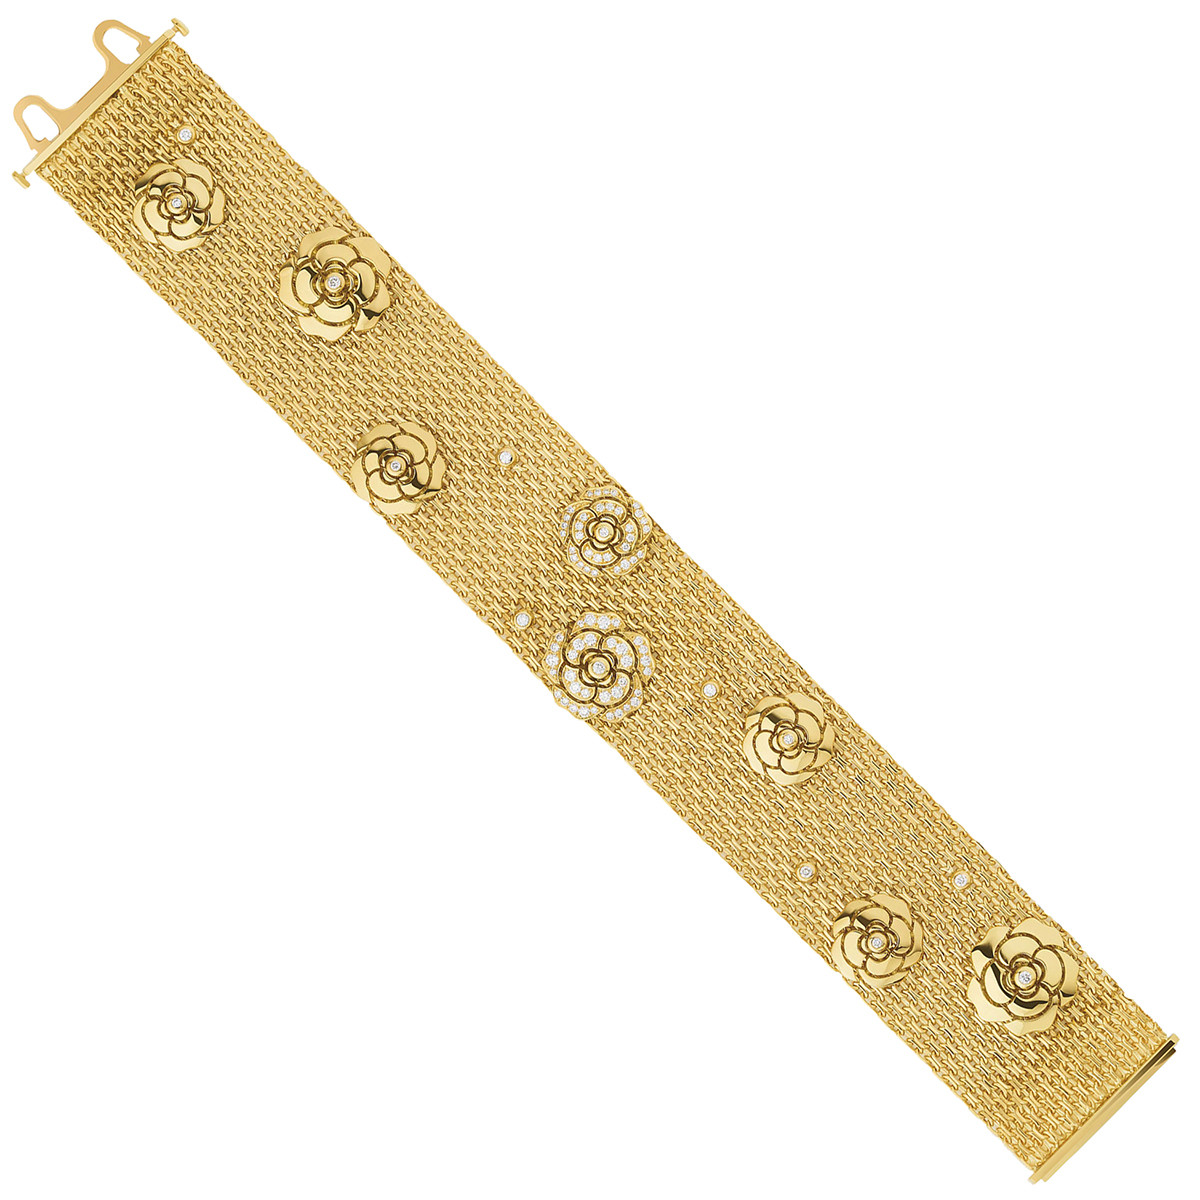 18k Yellow Gold & Diamond Camélia Bracelet